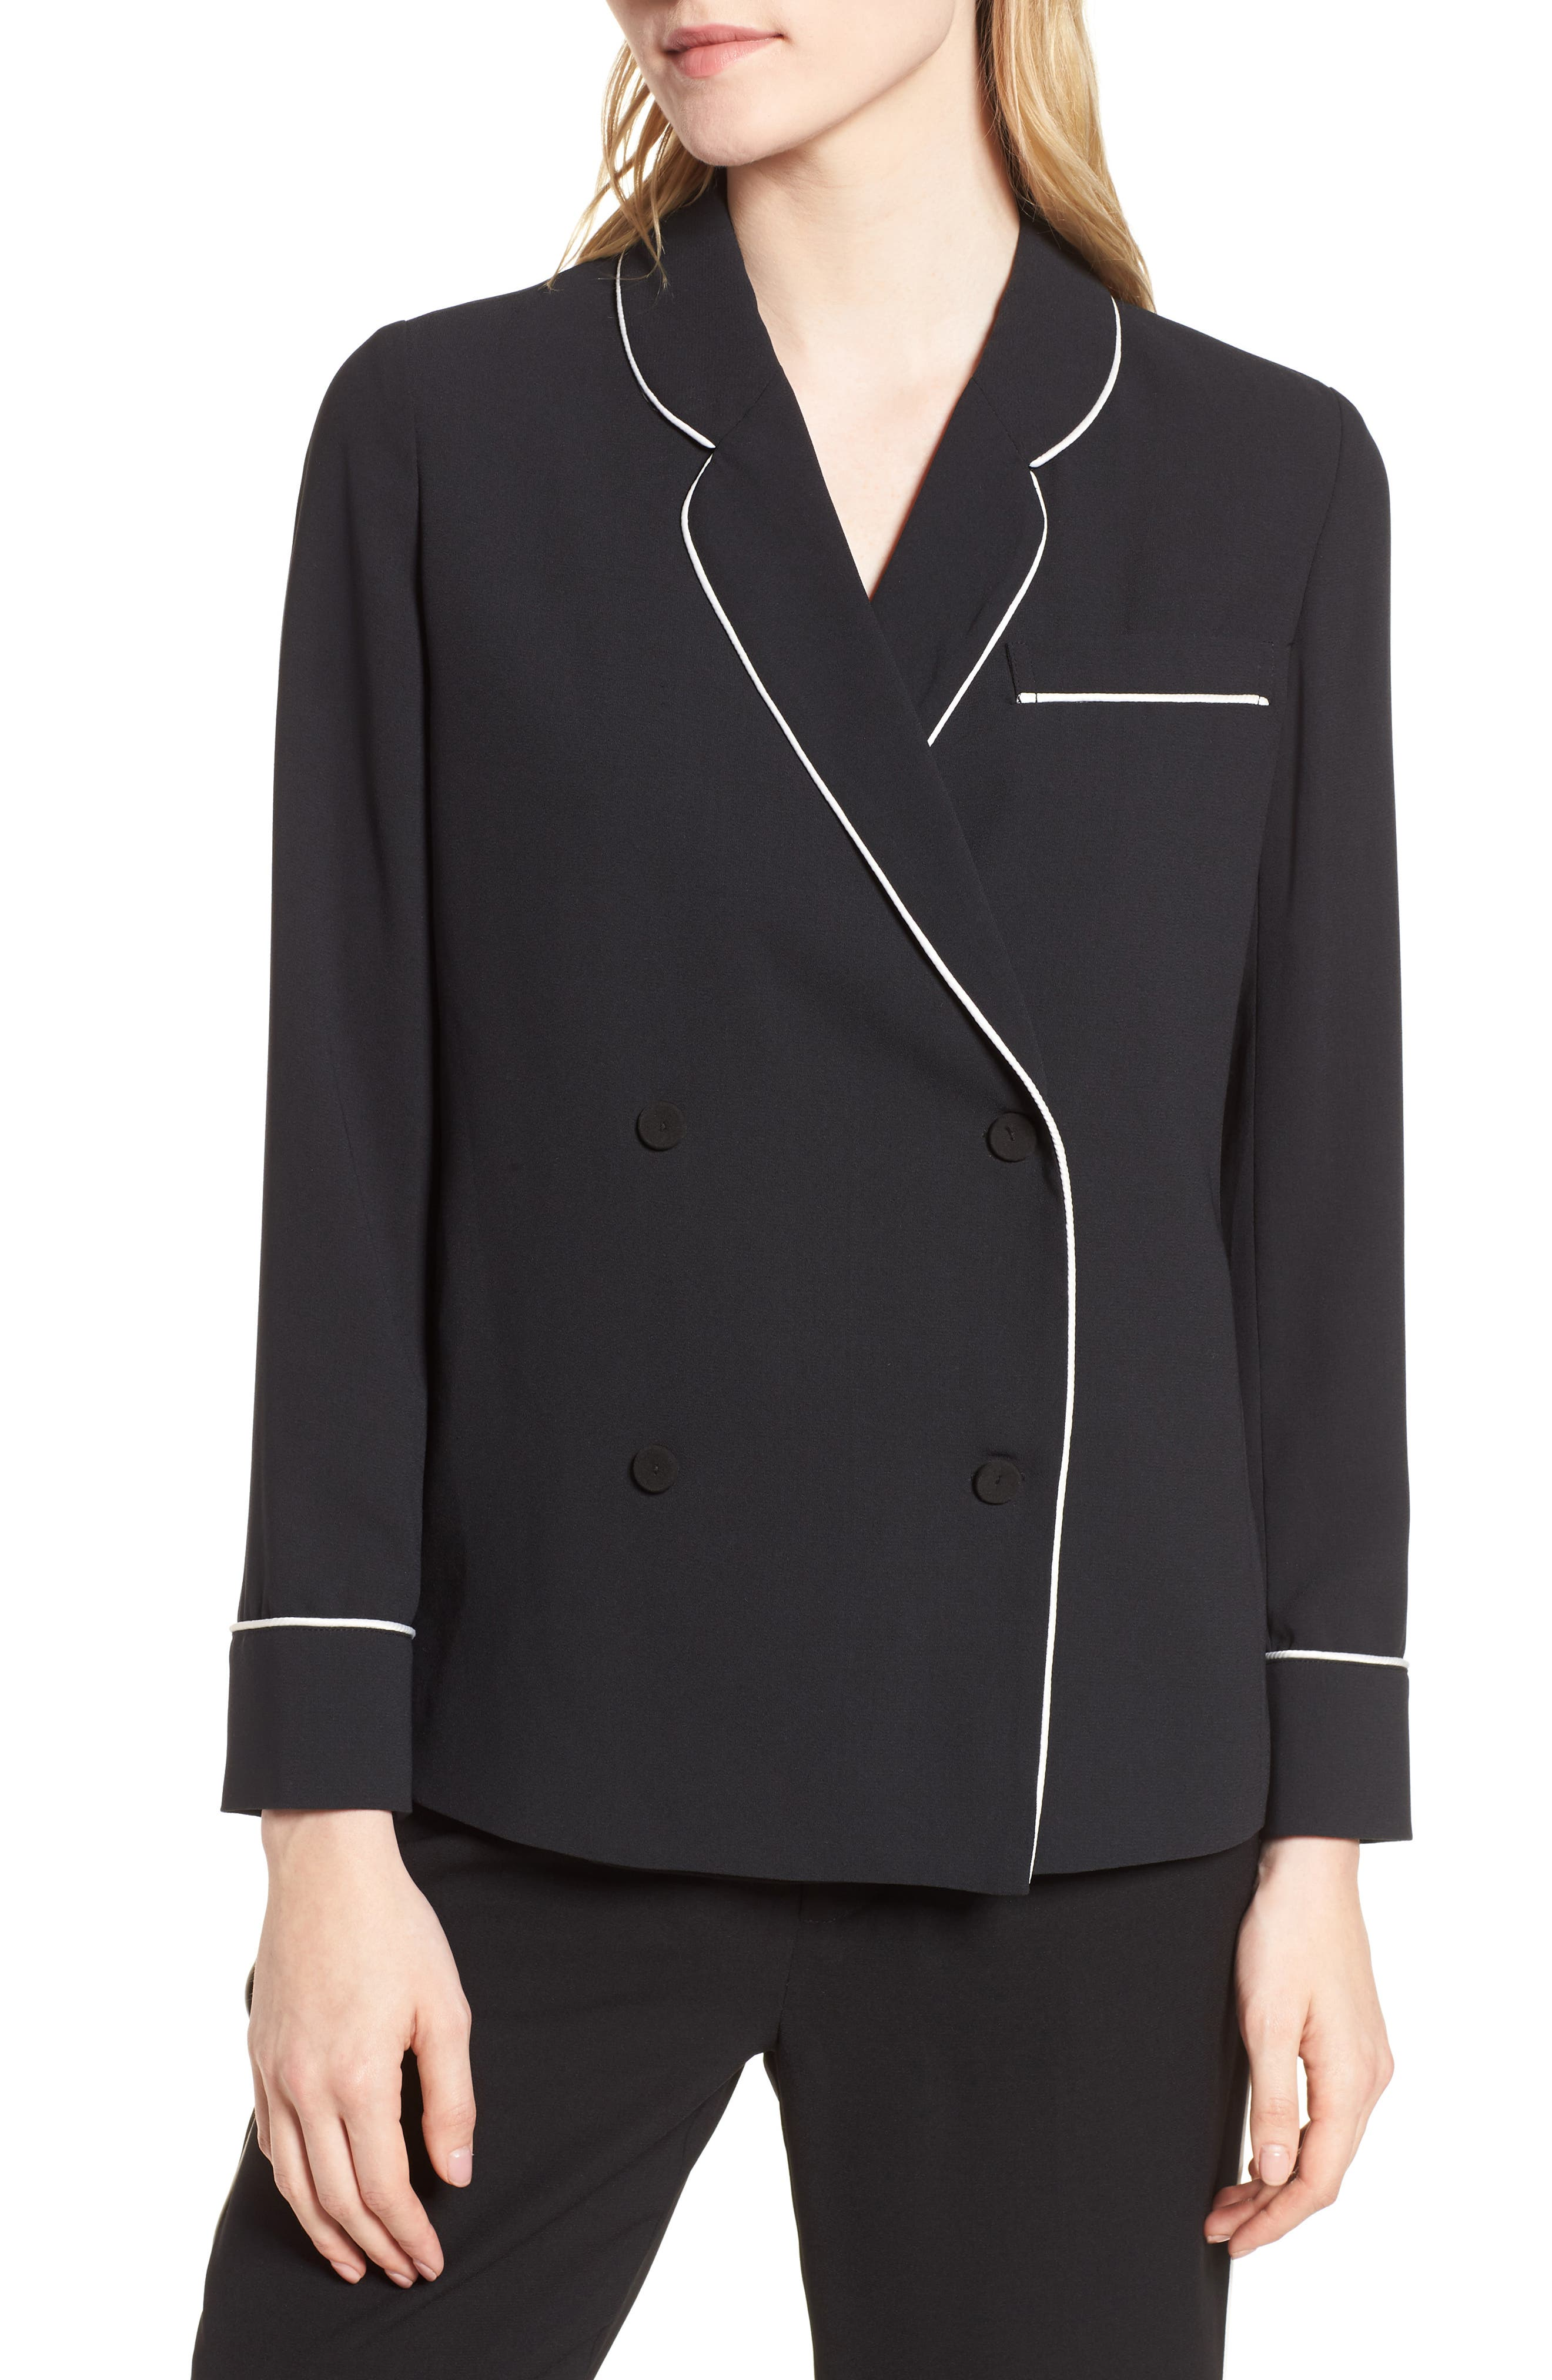 Double Breasted Jacket,                             Alternate thumbnail 4, color,                             Black/ Bright White Piping